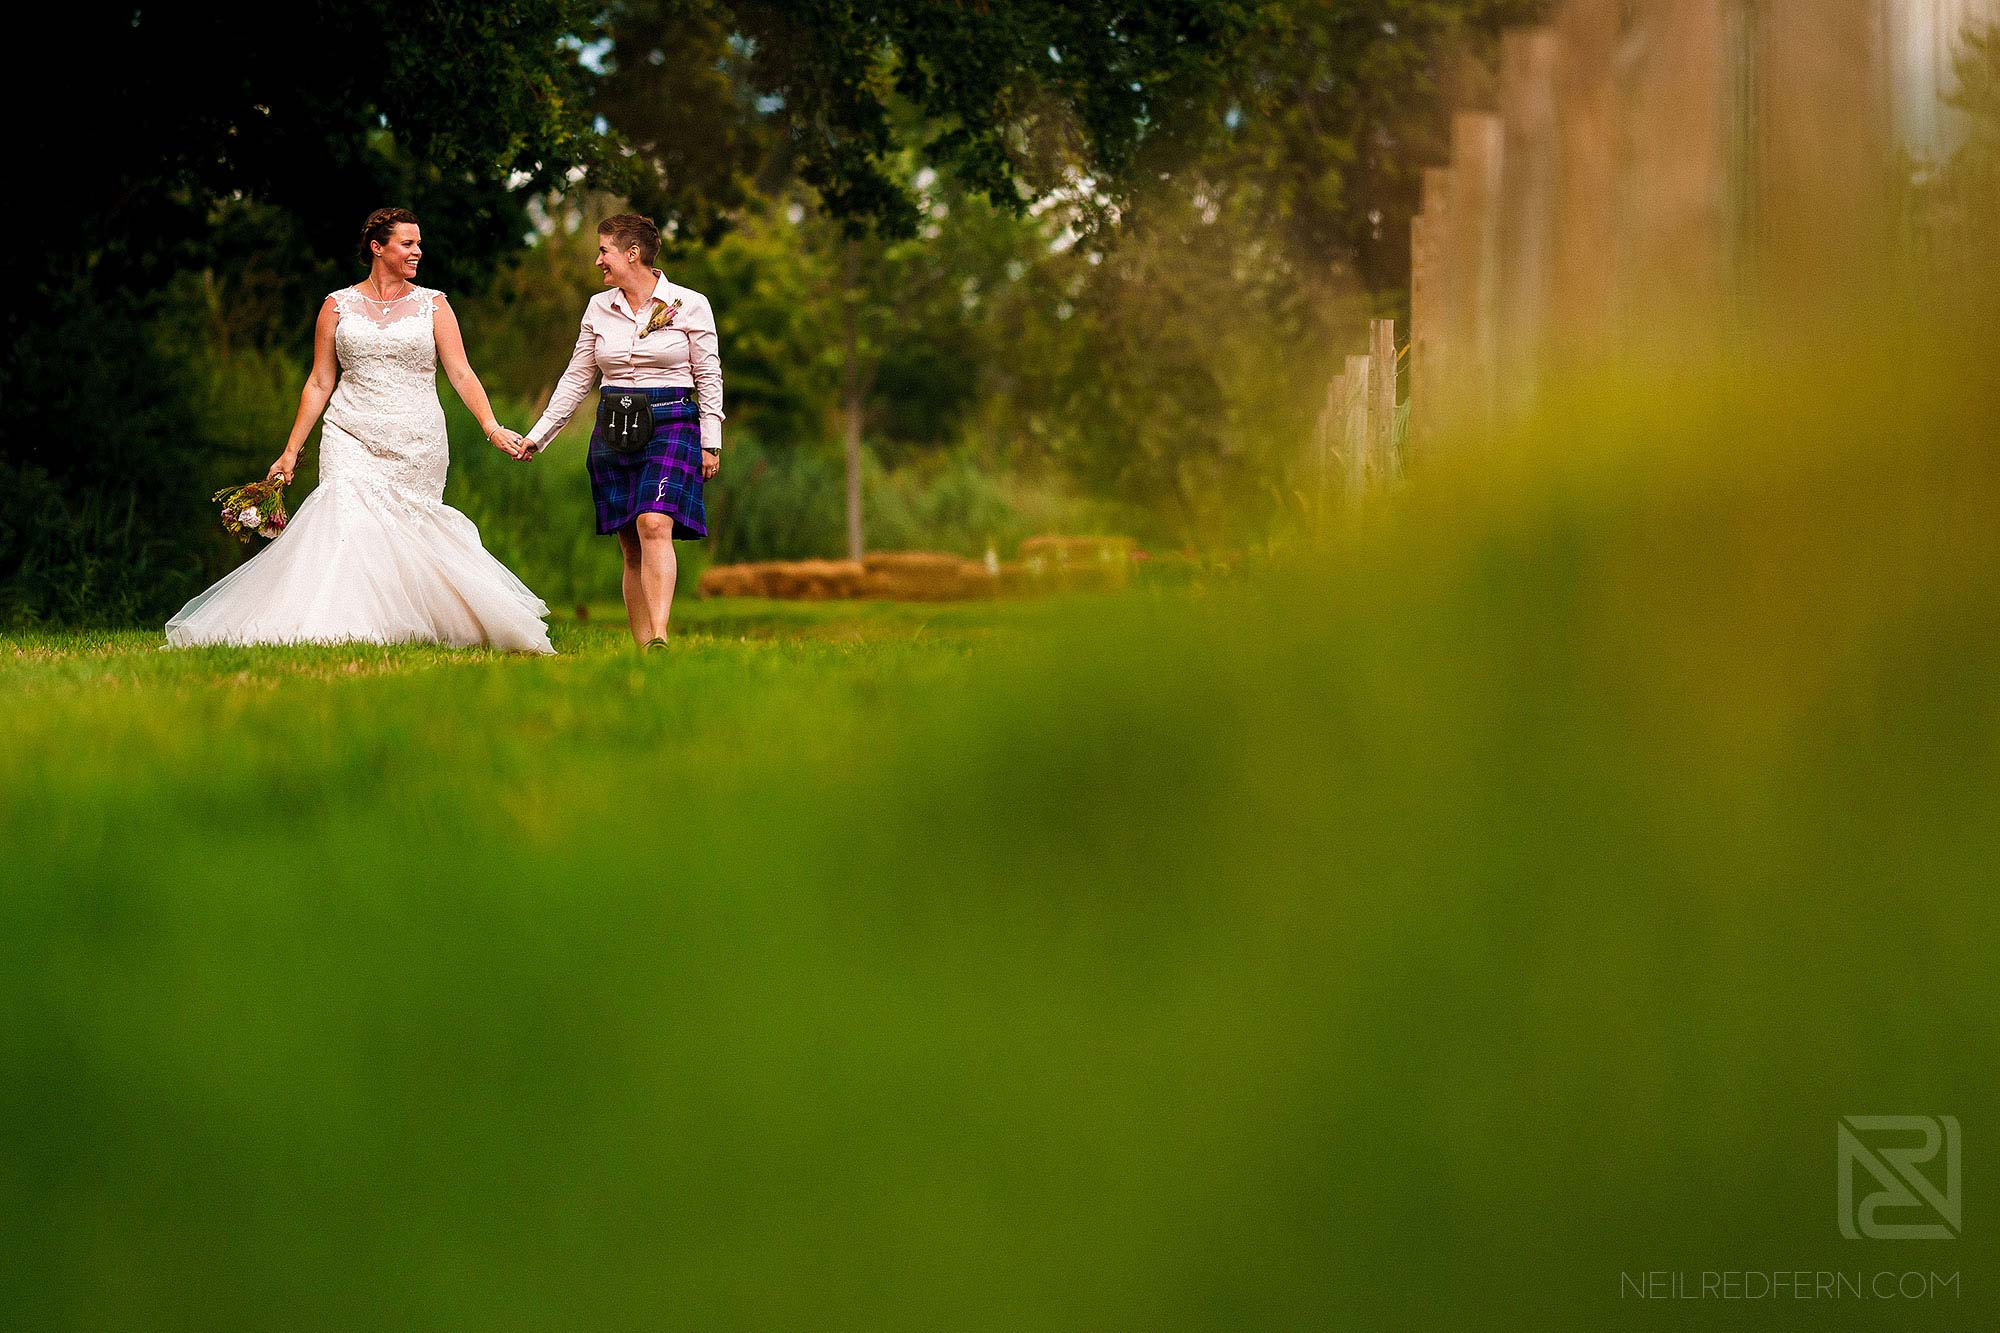 brides walking through countryside together